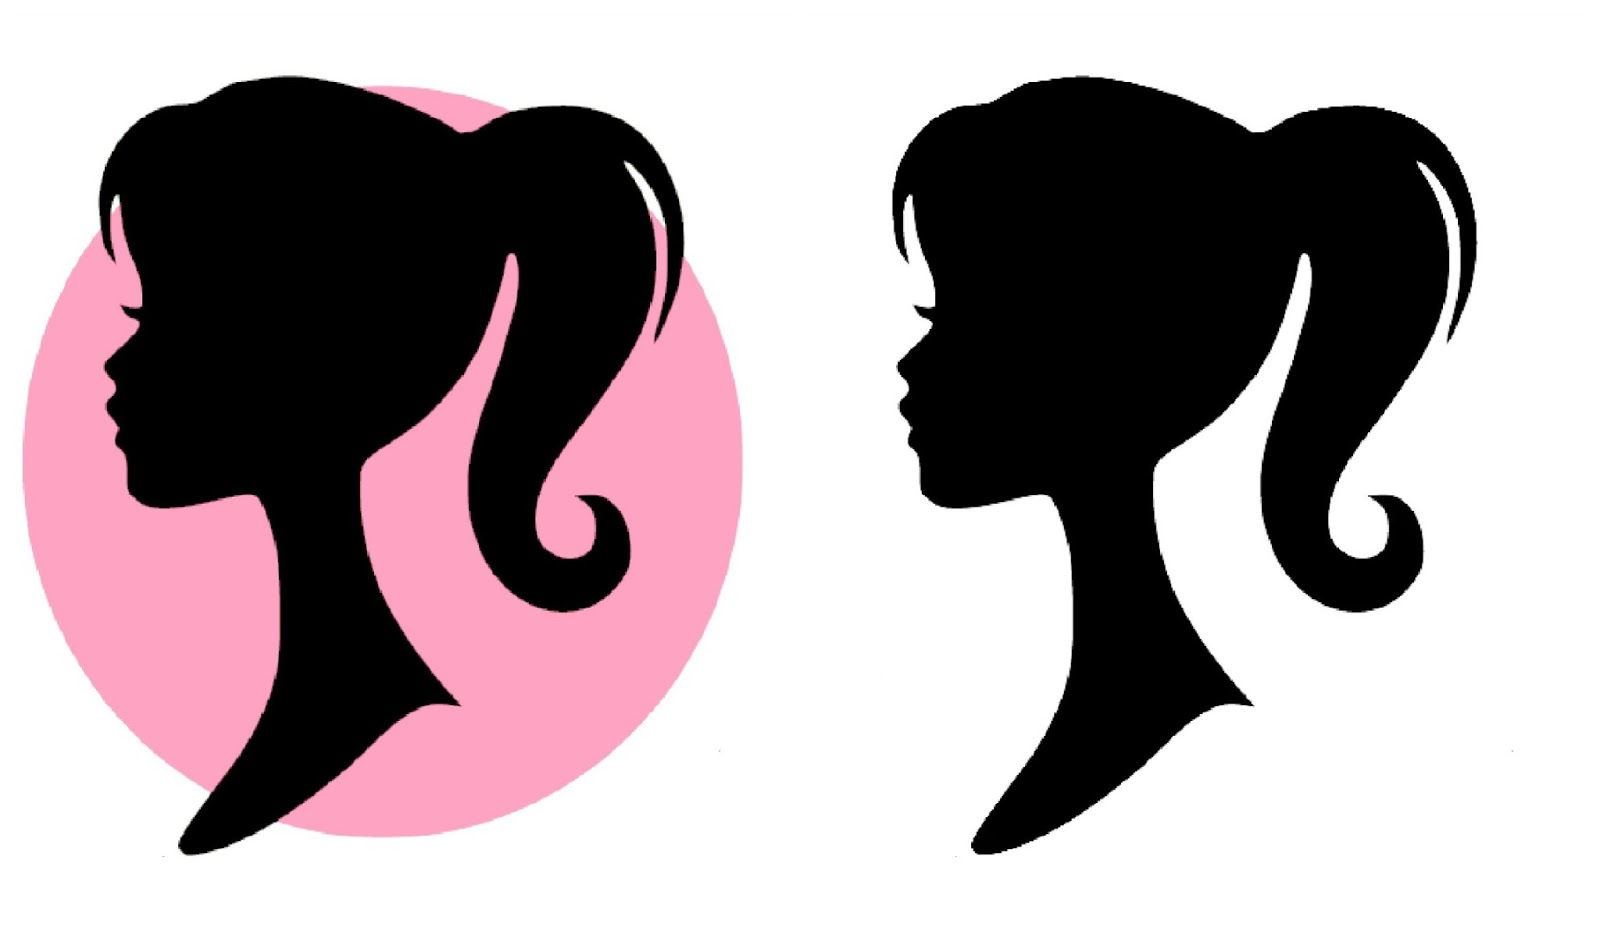 Barbie Silhouette Clipart - Clipart Kid